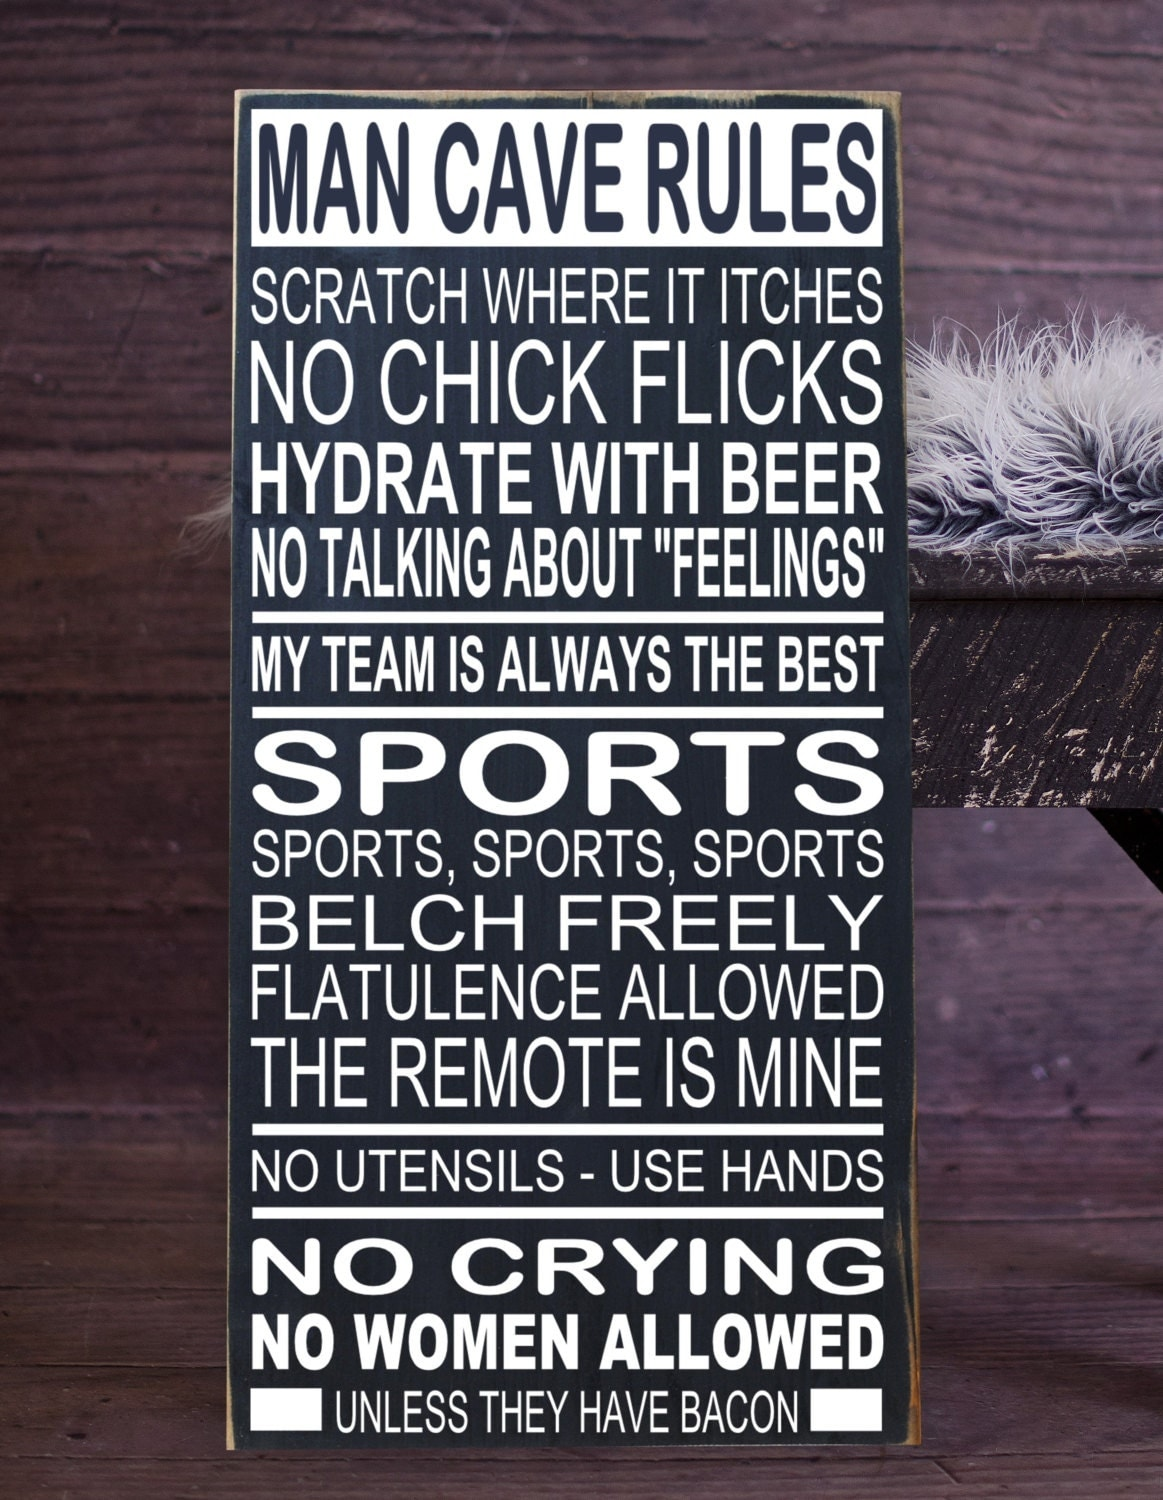 Man Cave Rules Artwork : Man cave rules subway art vinyl wood sign